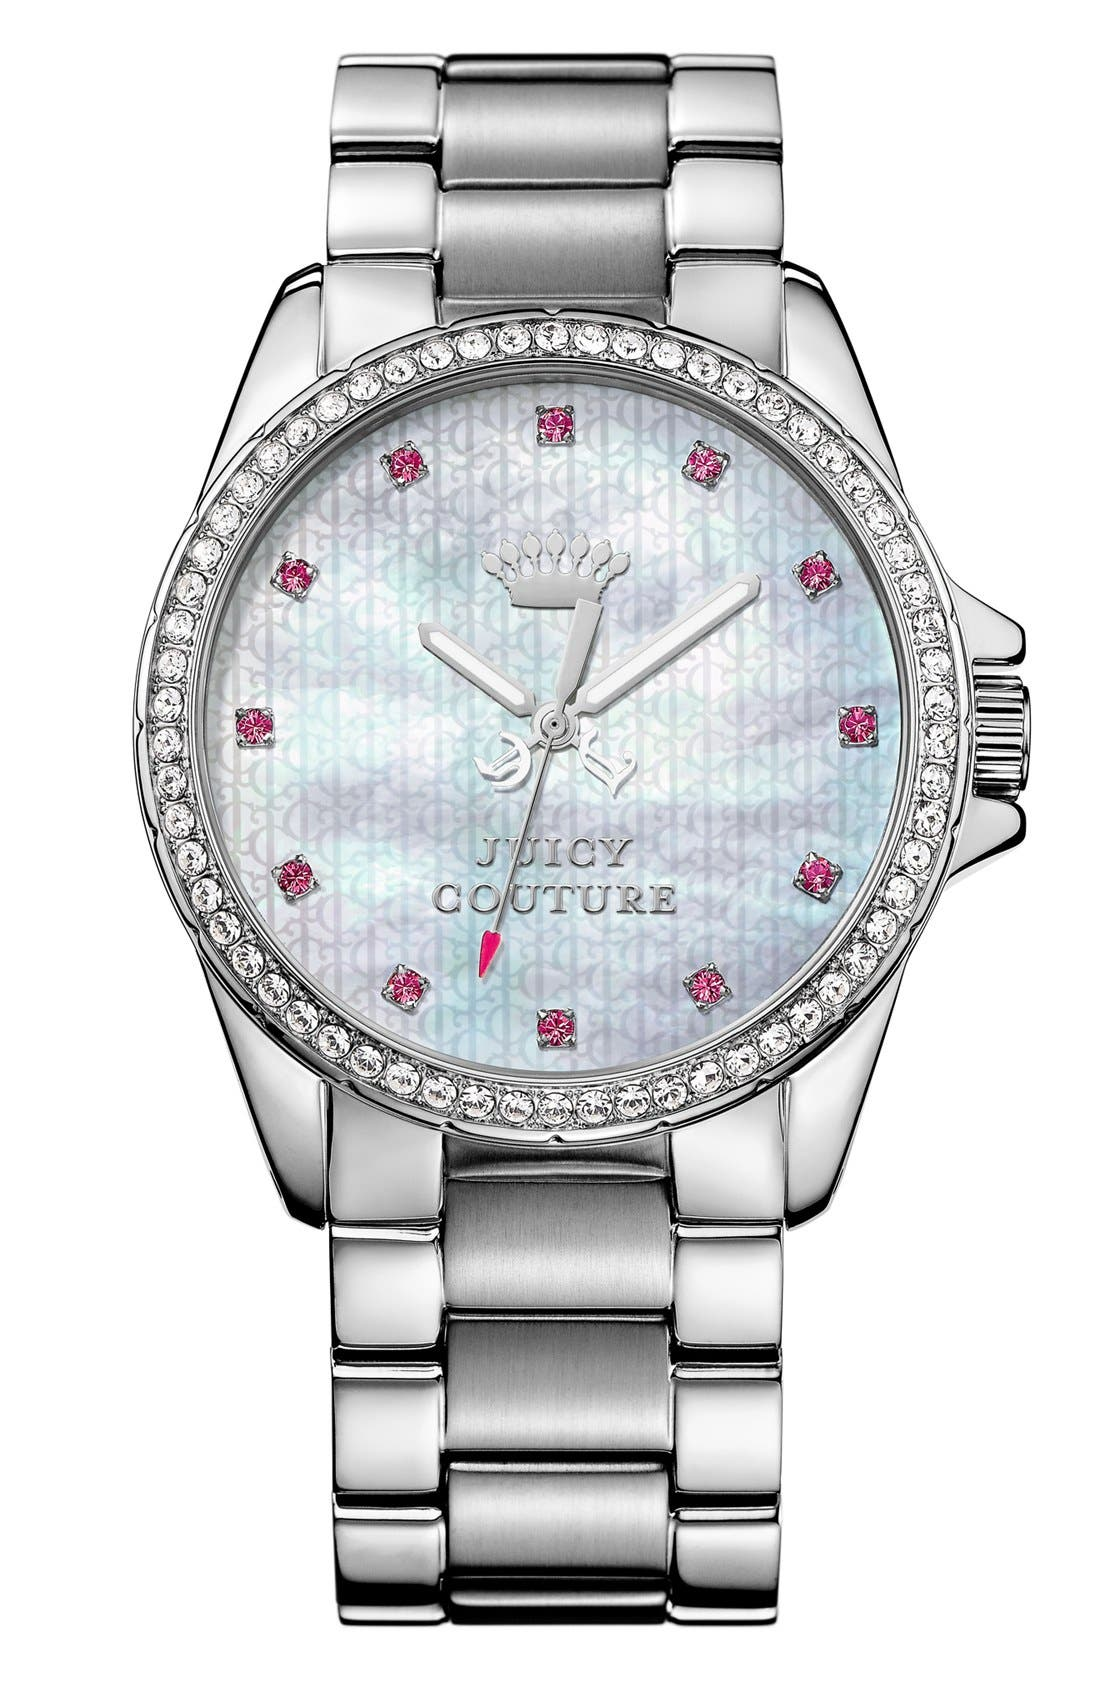 Main Image - Juicy Couture 'Stella' Crystal Bezel Watch, 40mm